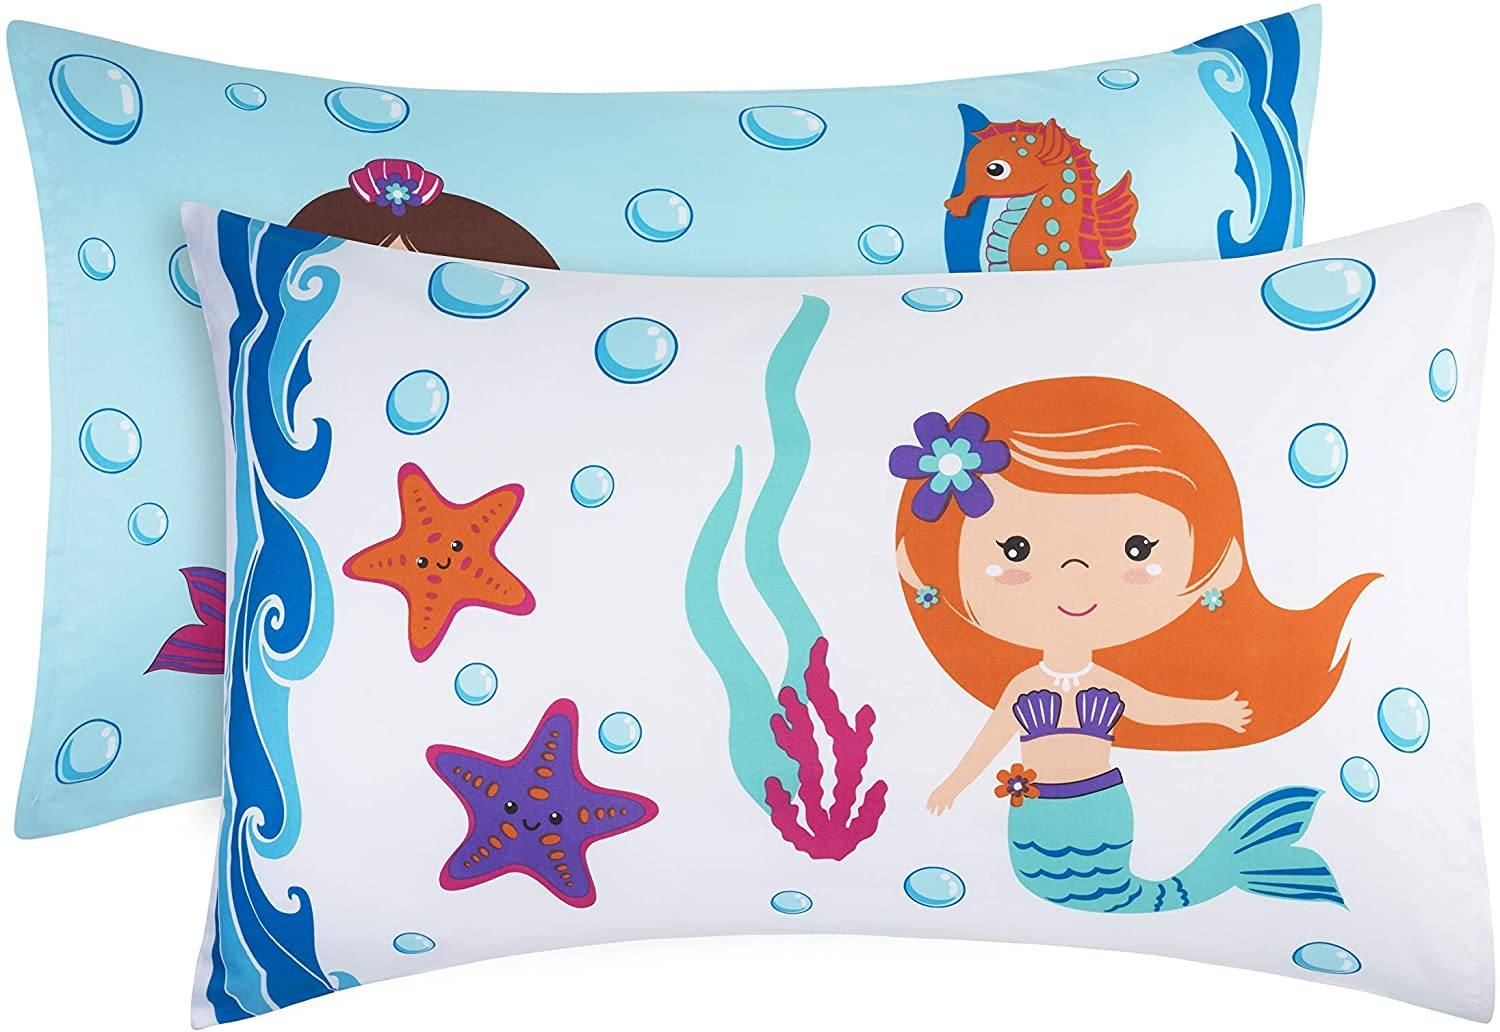 EVERYDAY KIDS Mermaid 2 Pack Pillowcase Set - Soft Microfiber, Breathable and Hypoallergenic Pillowcase Set